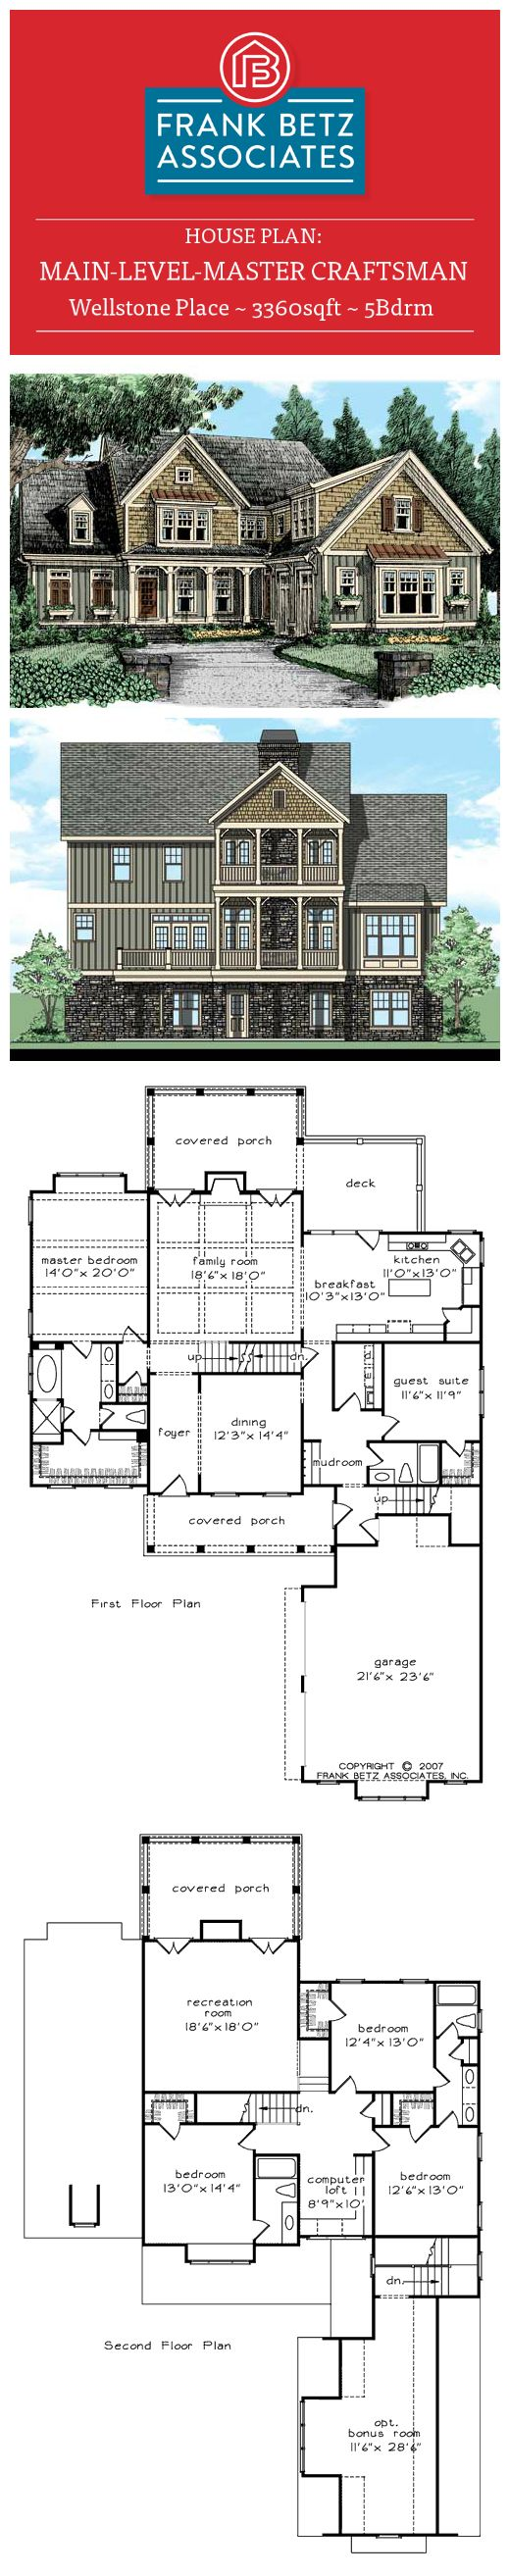 Betz house plans with large kitchen frank house plans designs ideas - Wellstone Place 3360sqft 5bdrm Main Level Master Craftsman House Plan By Frank Betz